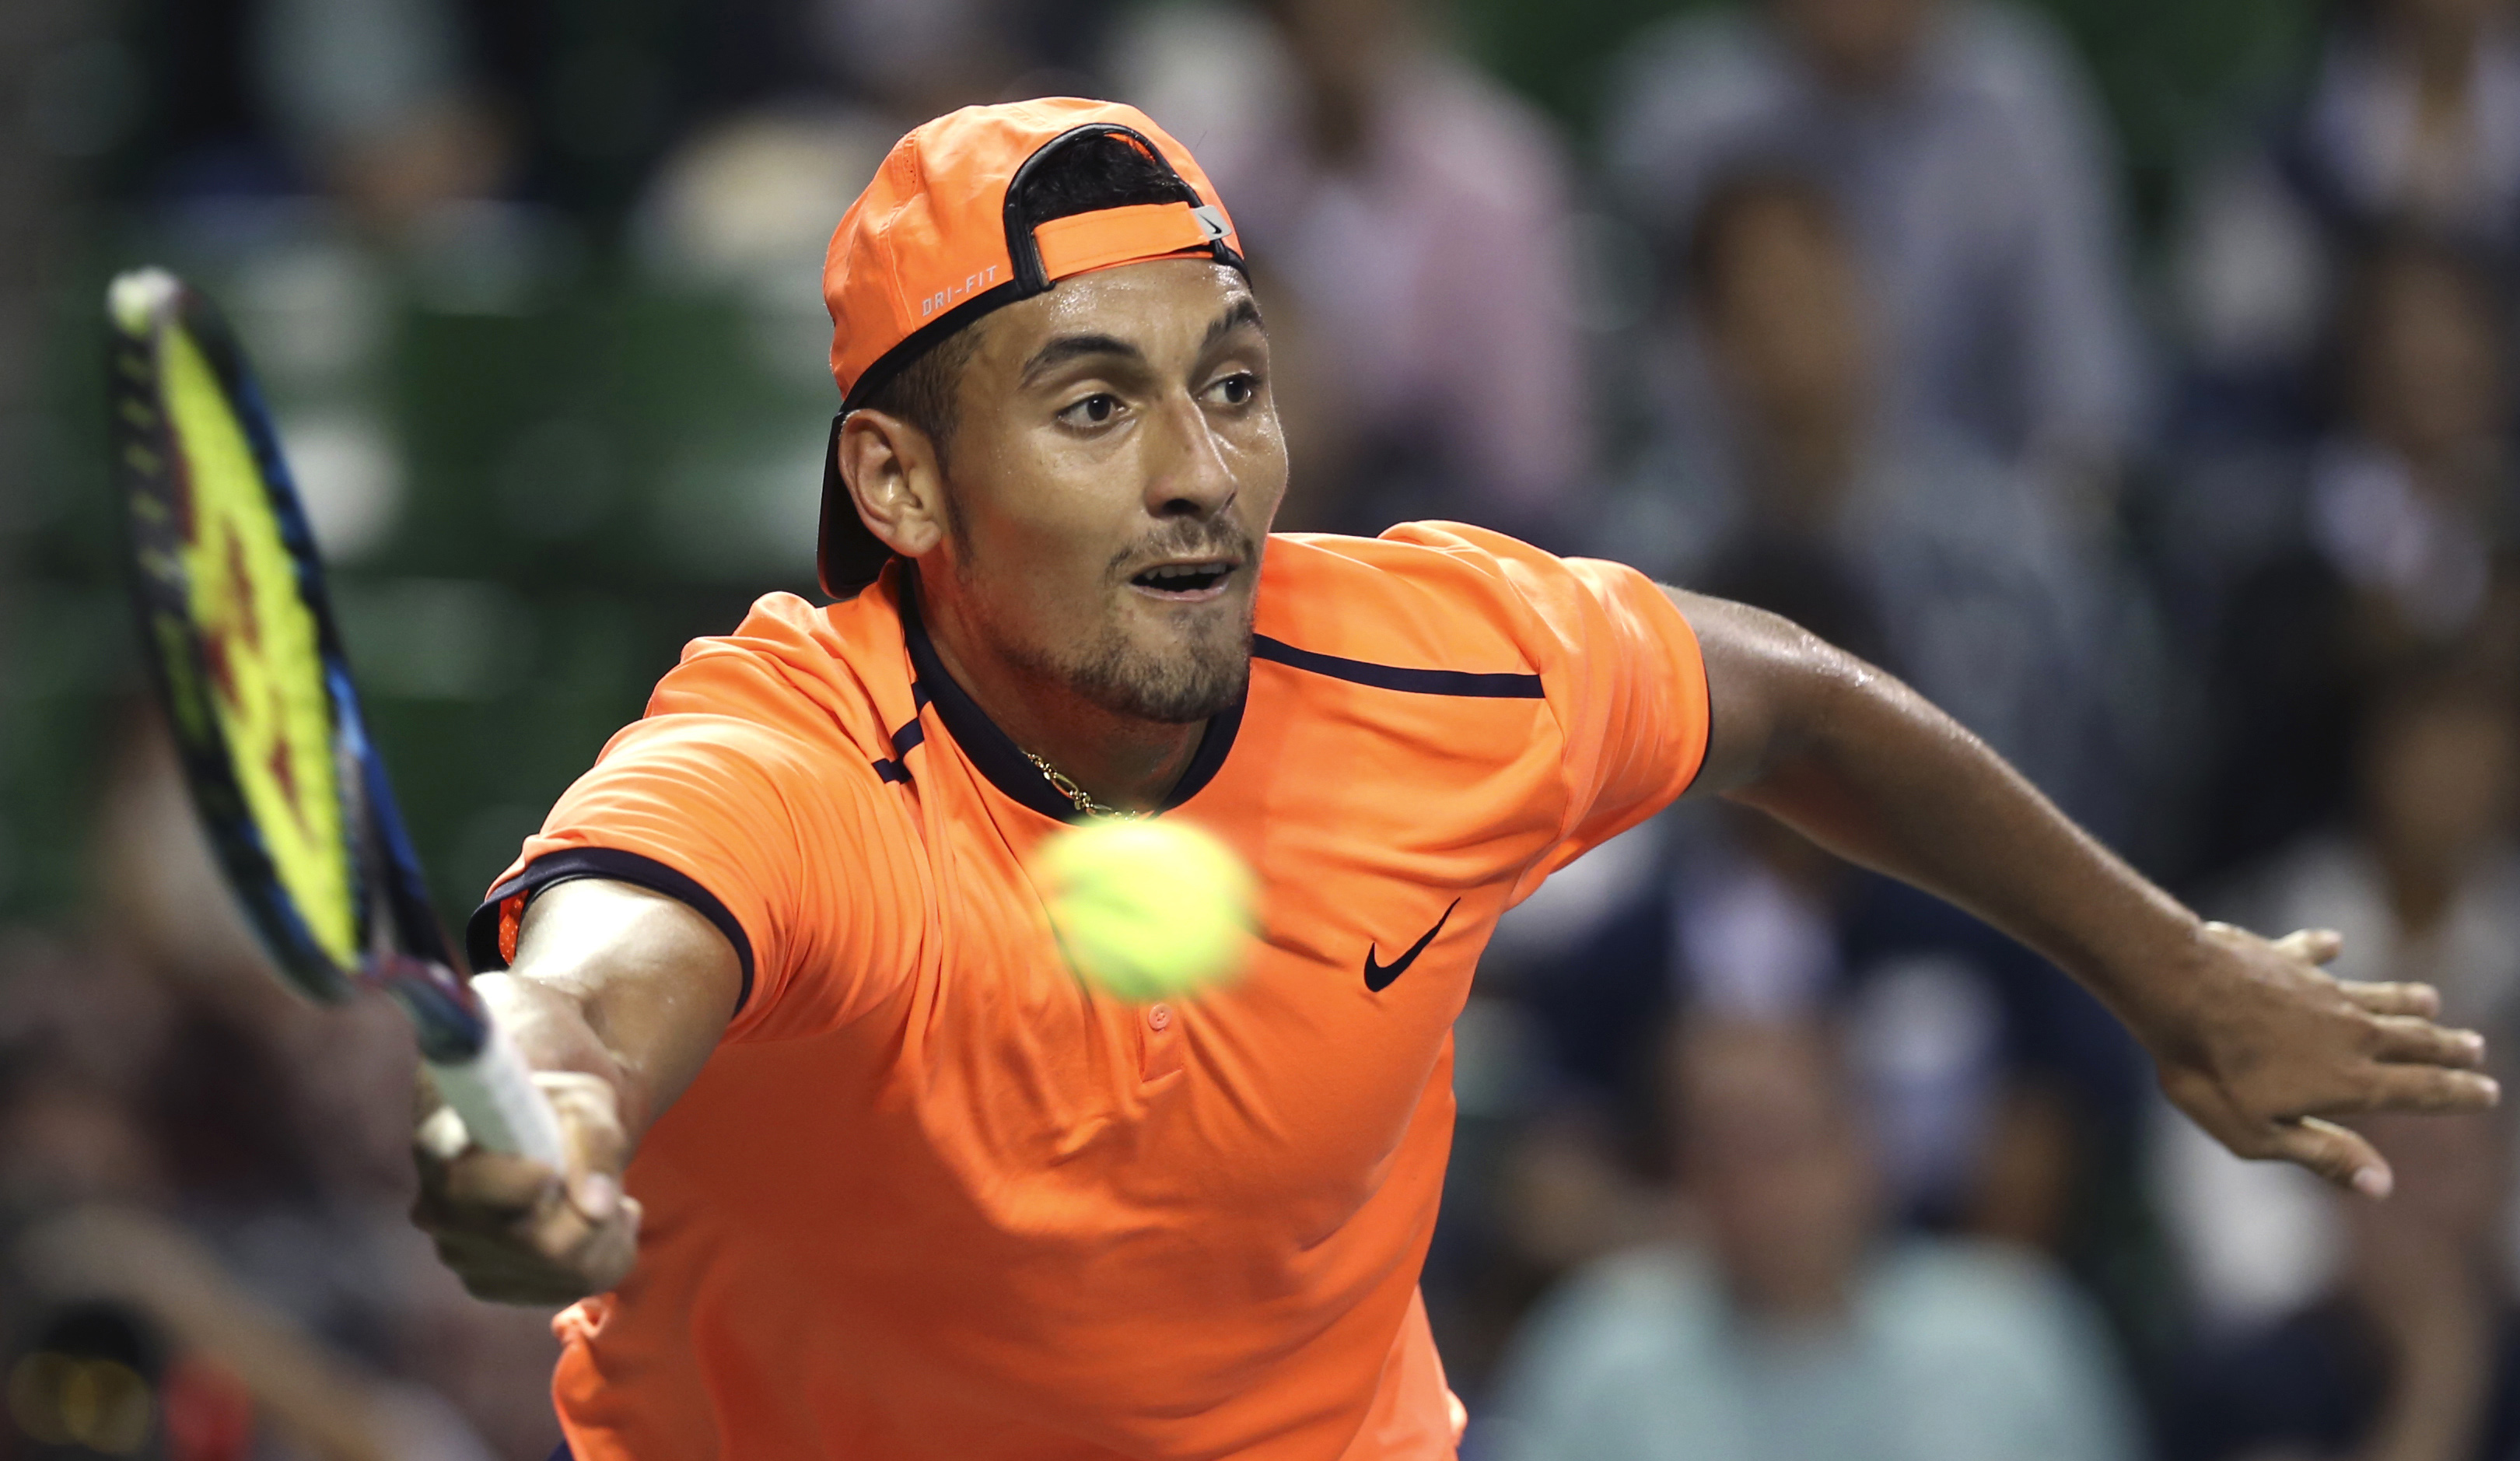 FILE - In this Saturday, Oct. 8, 2016, file photo, Australia's Nick Kyrgios returns a shot to Gael Monfils of France during the semifinal match of Japan Open tennis championships in Tokyo.  The ATP has suspended Nick Kyrgios for at least 3 weeks and fined